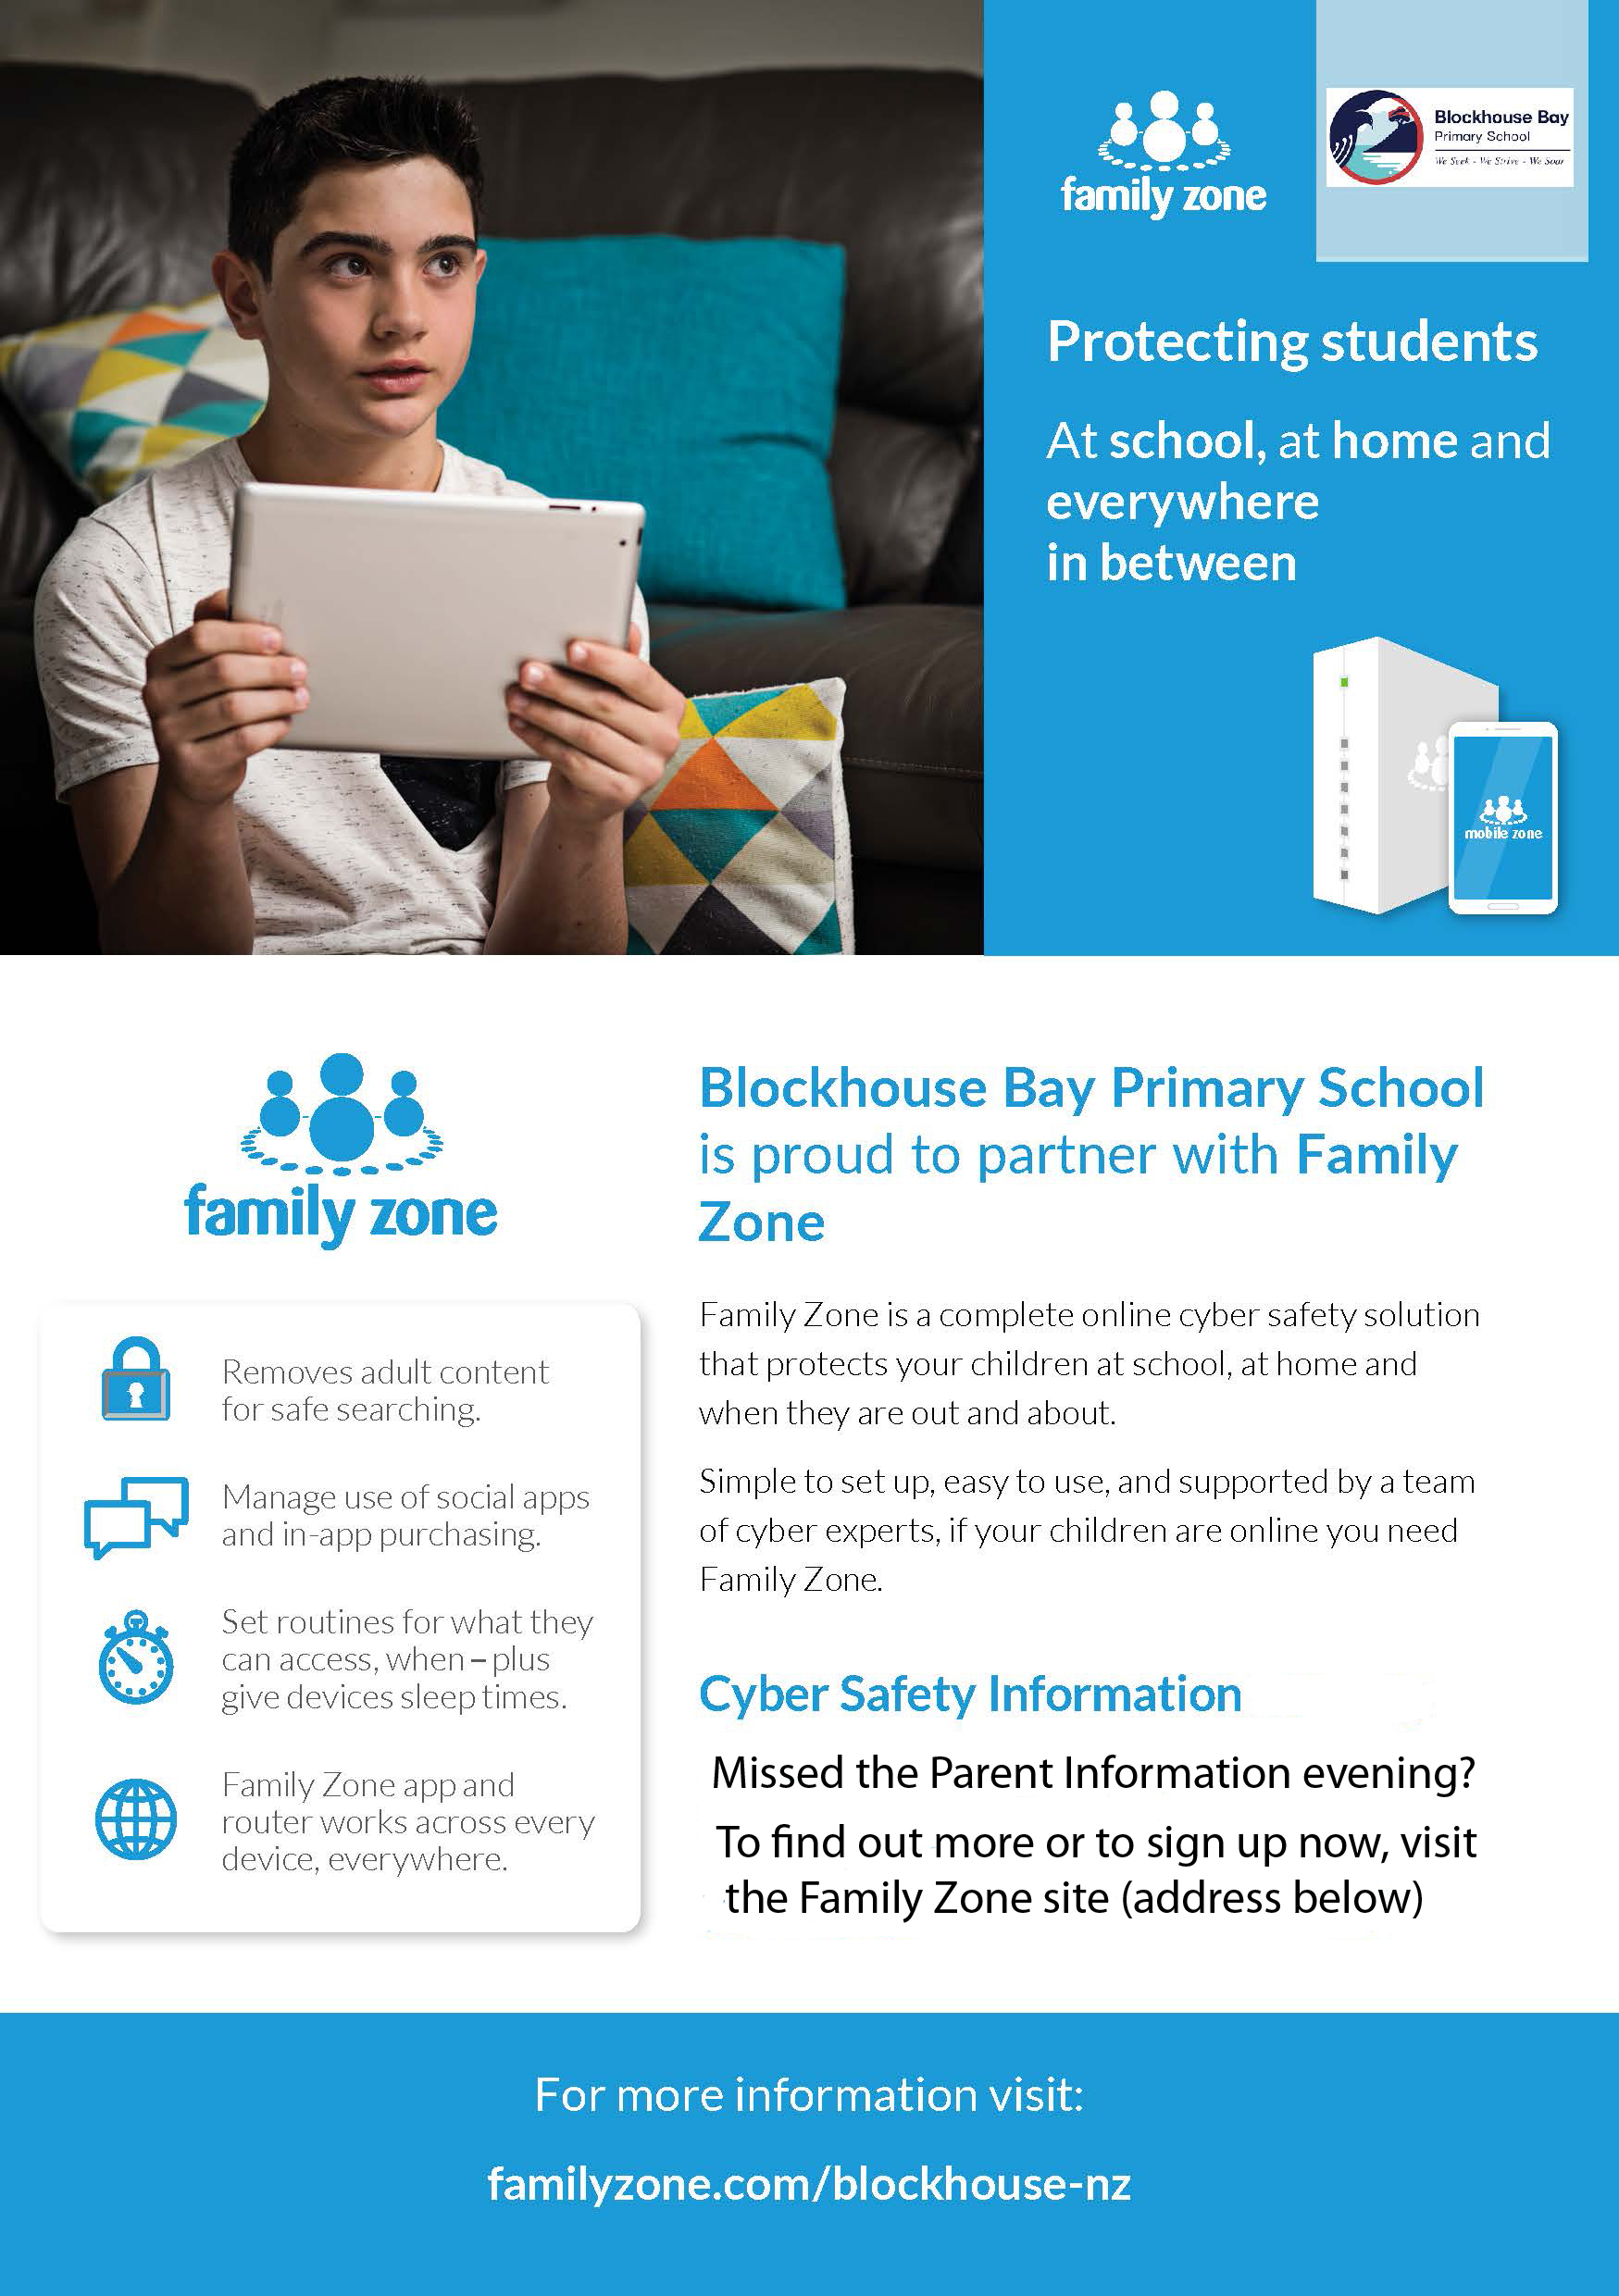 Blockhouse Bay Primary School - A community approach to Cybersafety - Family Zone - Protecting students at School, at home and everywhere inbetween